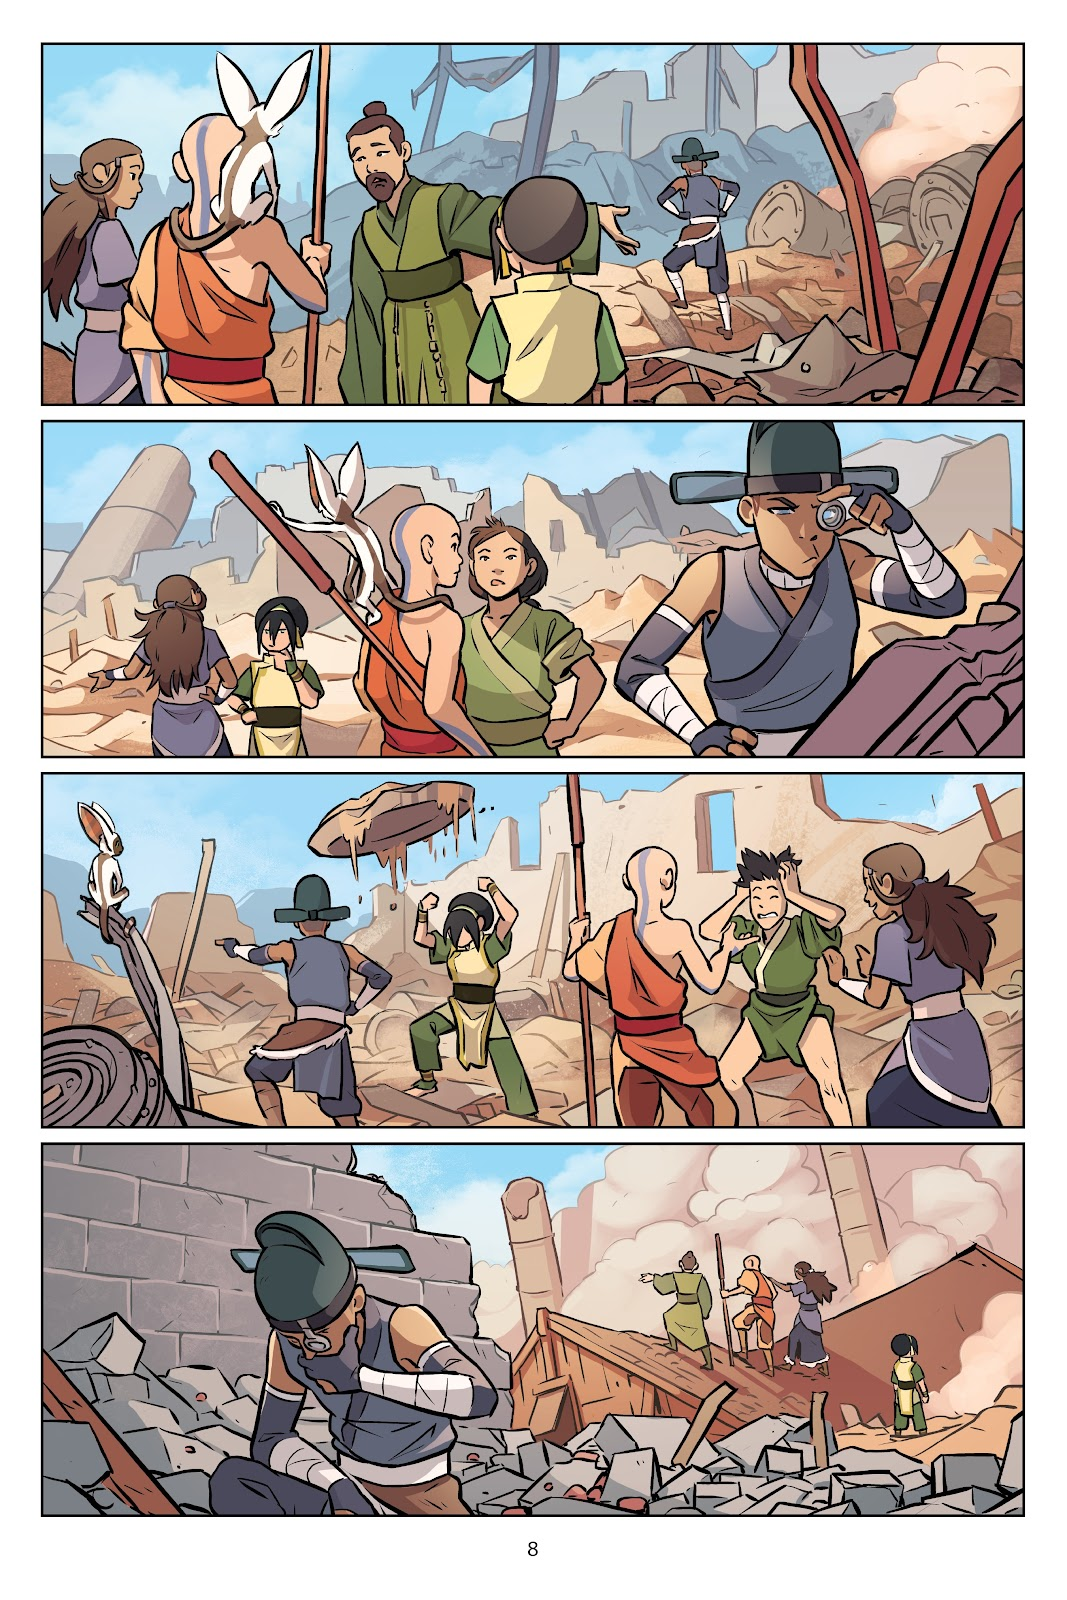 Read online Nickelodeon Avatar: The Last Airbender - Imbalance comic -  Issue # TPB 2 - 9